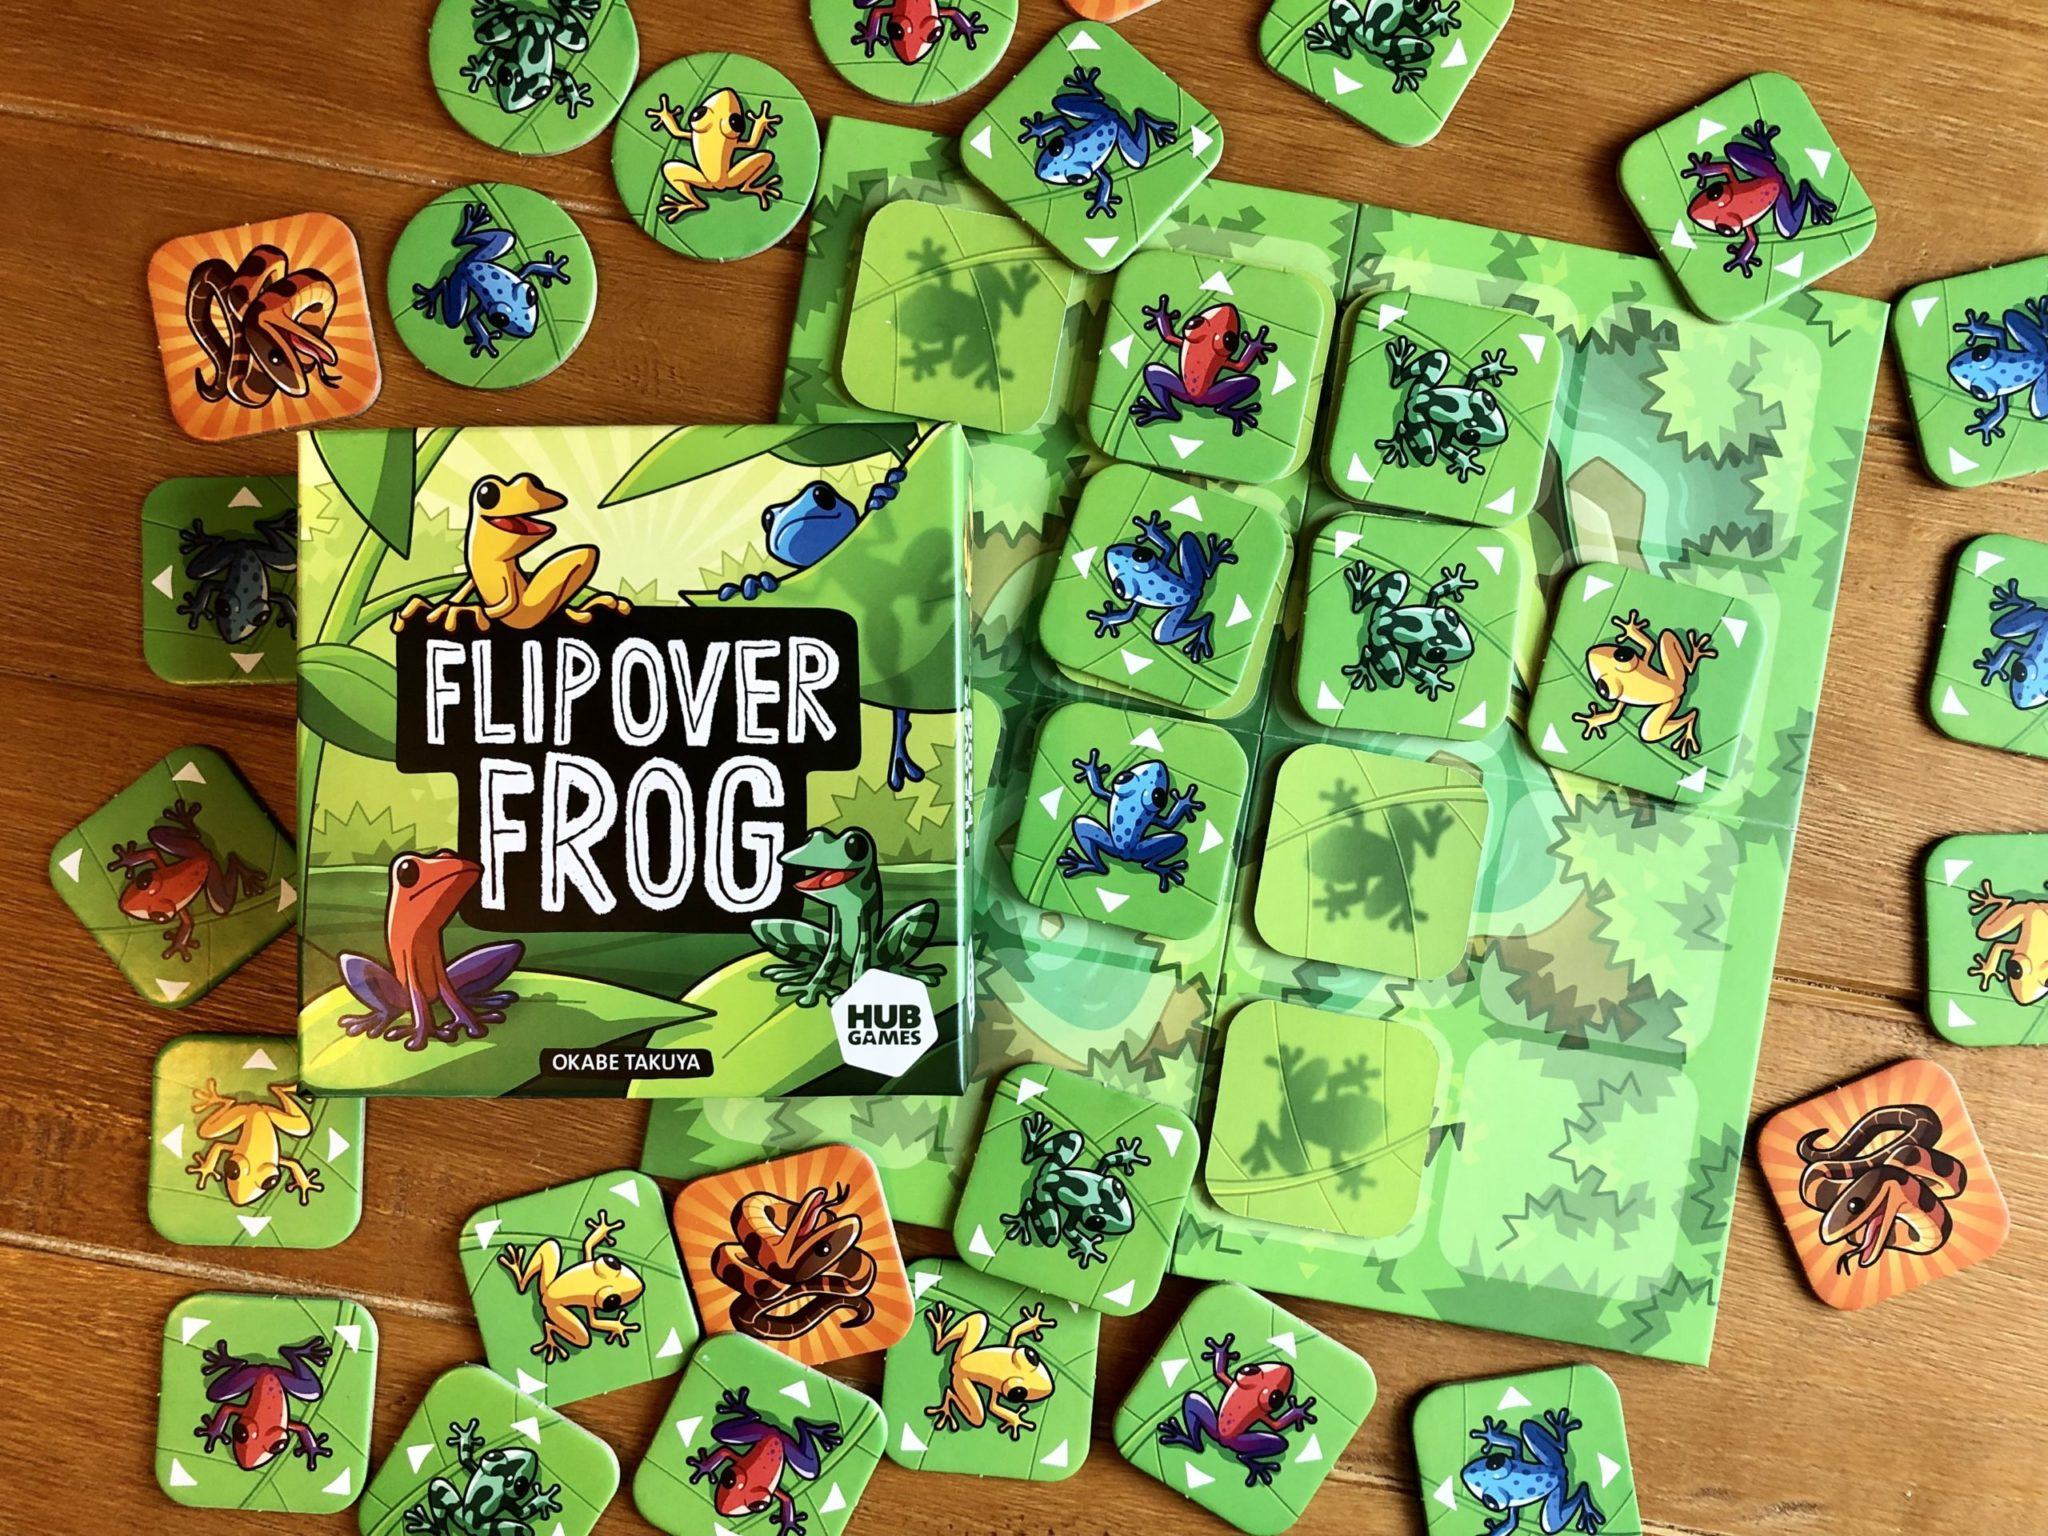 Flip Over Frog game with components